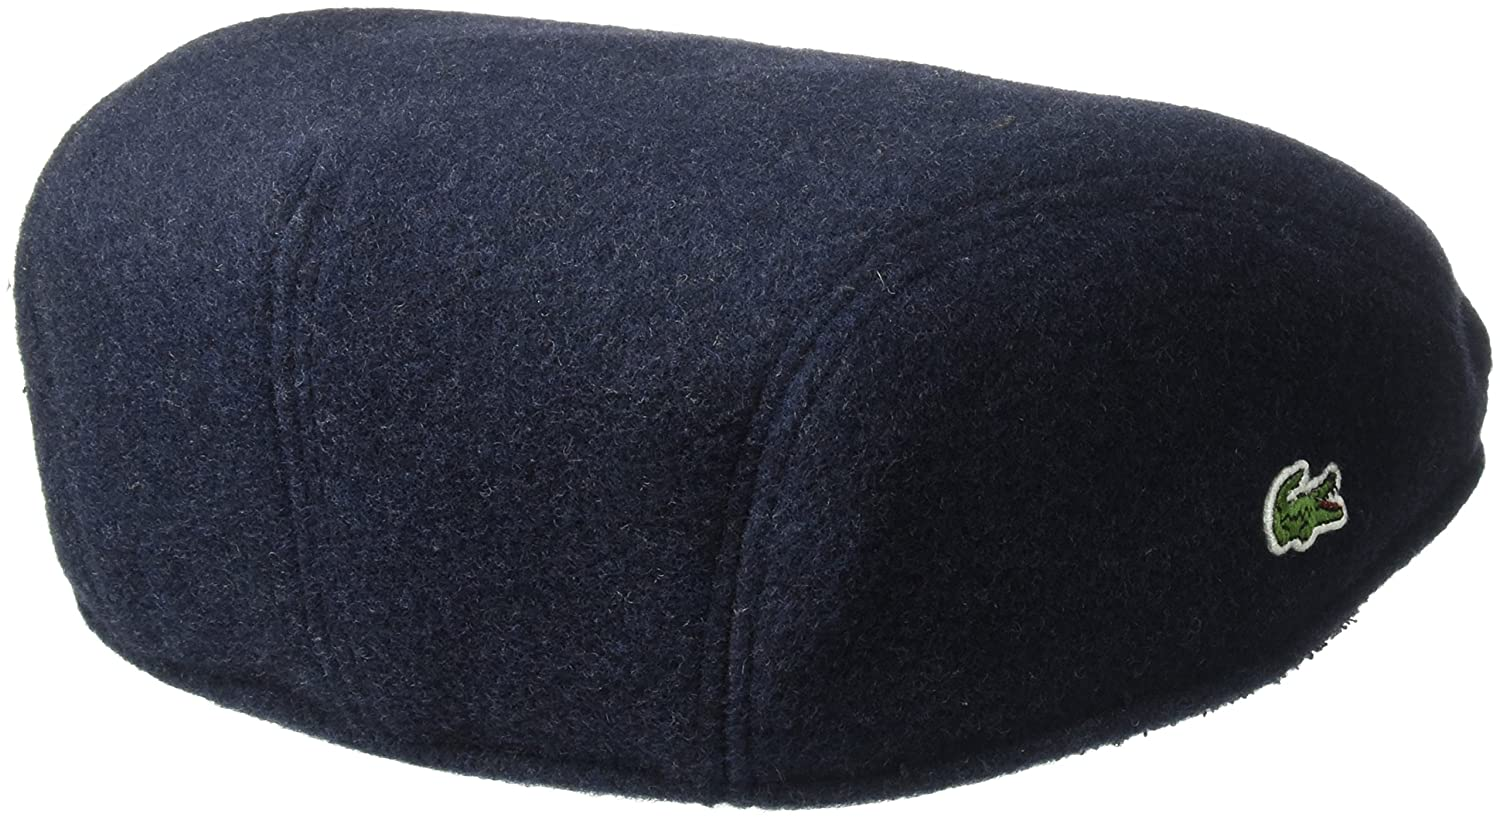 Lacoste Mens Wool Broadcloth Driver Cap